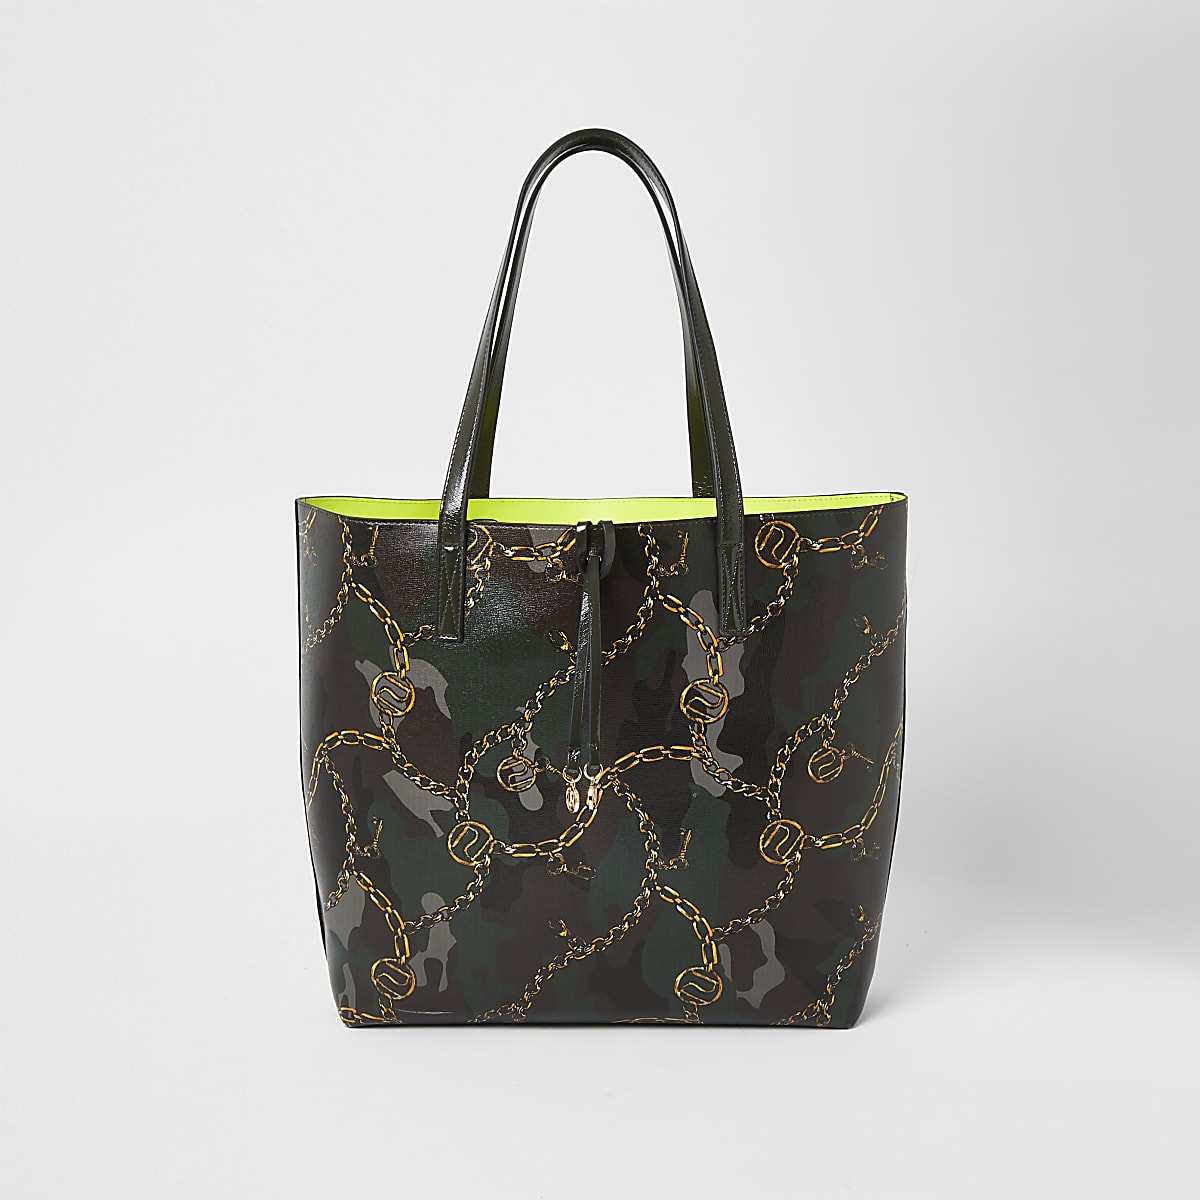 Khaki camo shopper tote bag